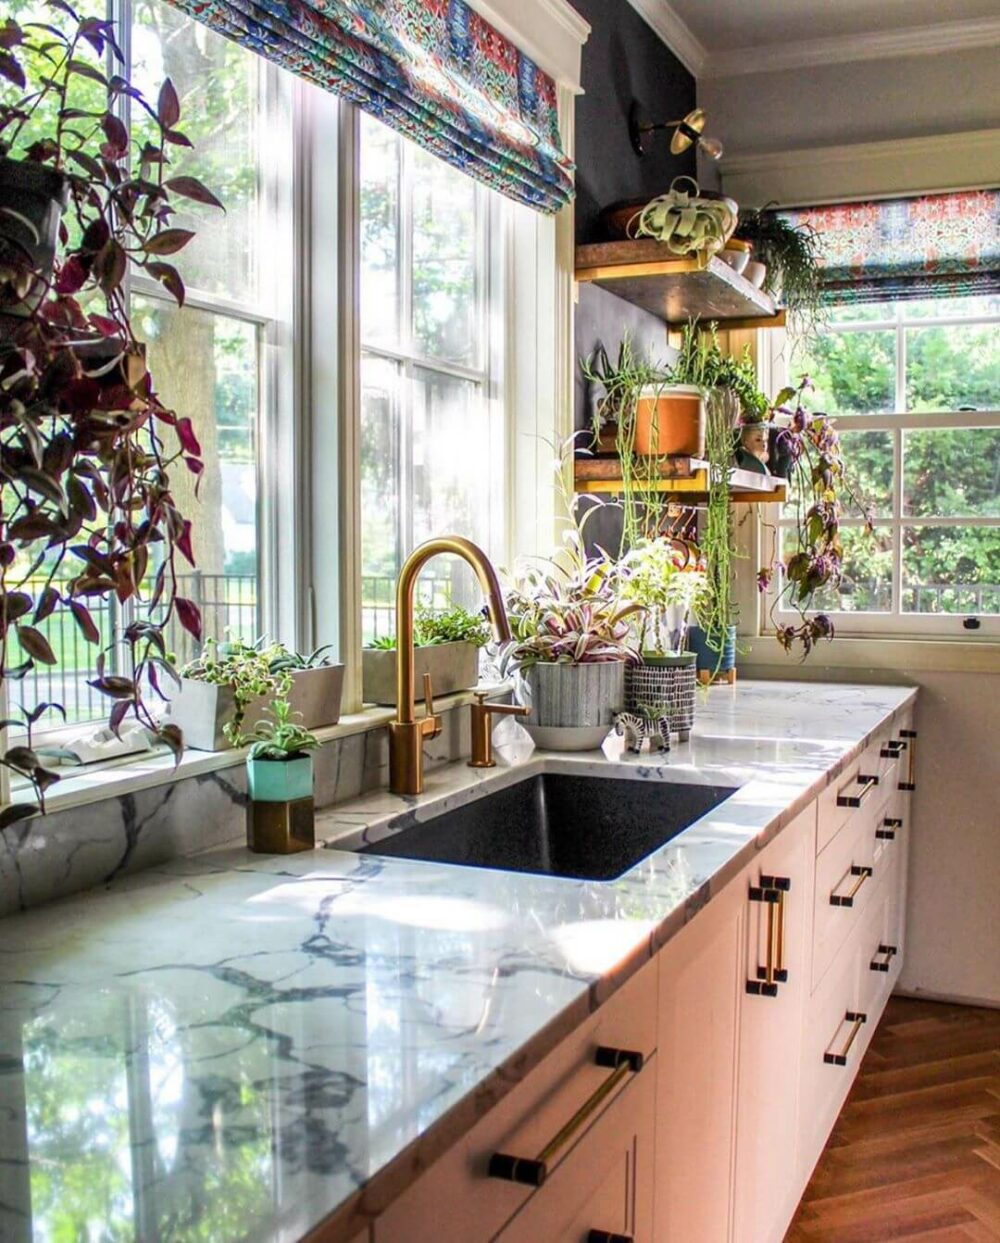 21 Inspiring Kitchen Sink Ideas to Bring Style to the Kitchen on Kitchen Sink Ideas  id=31842